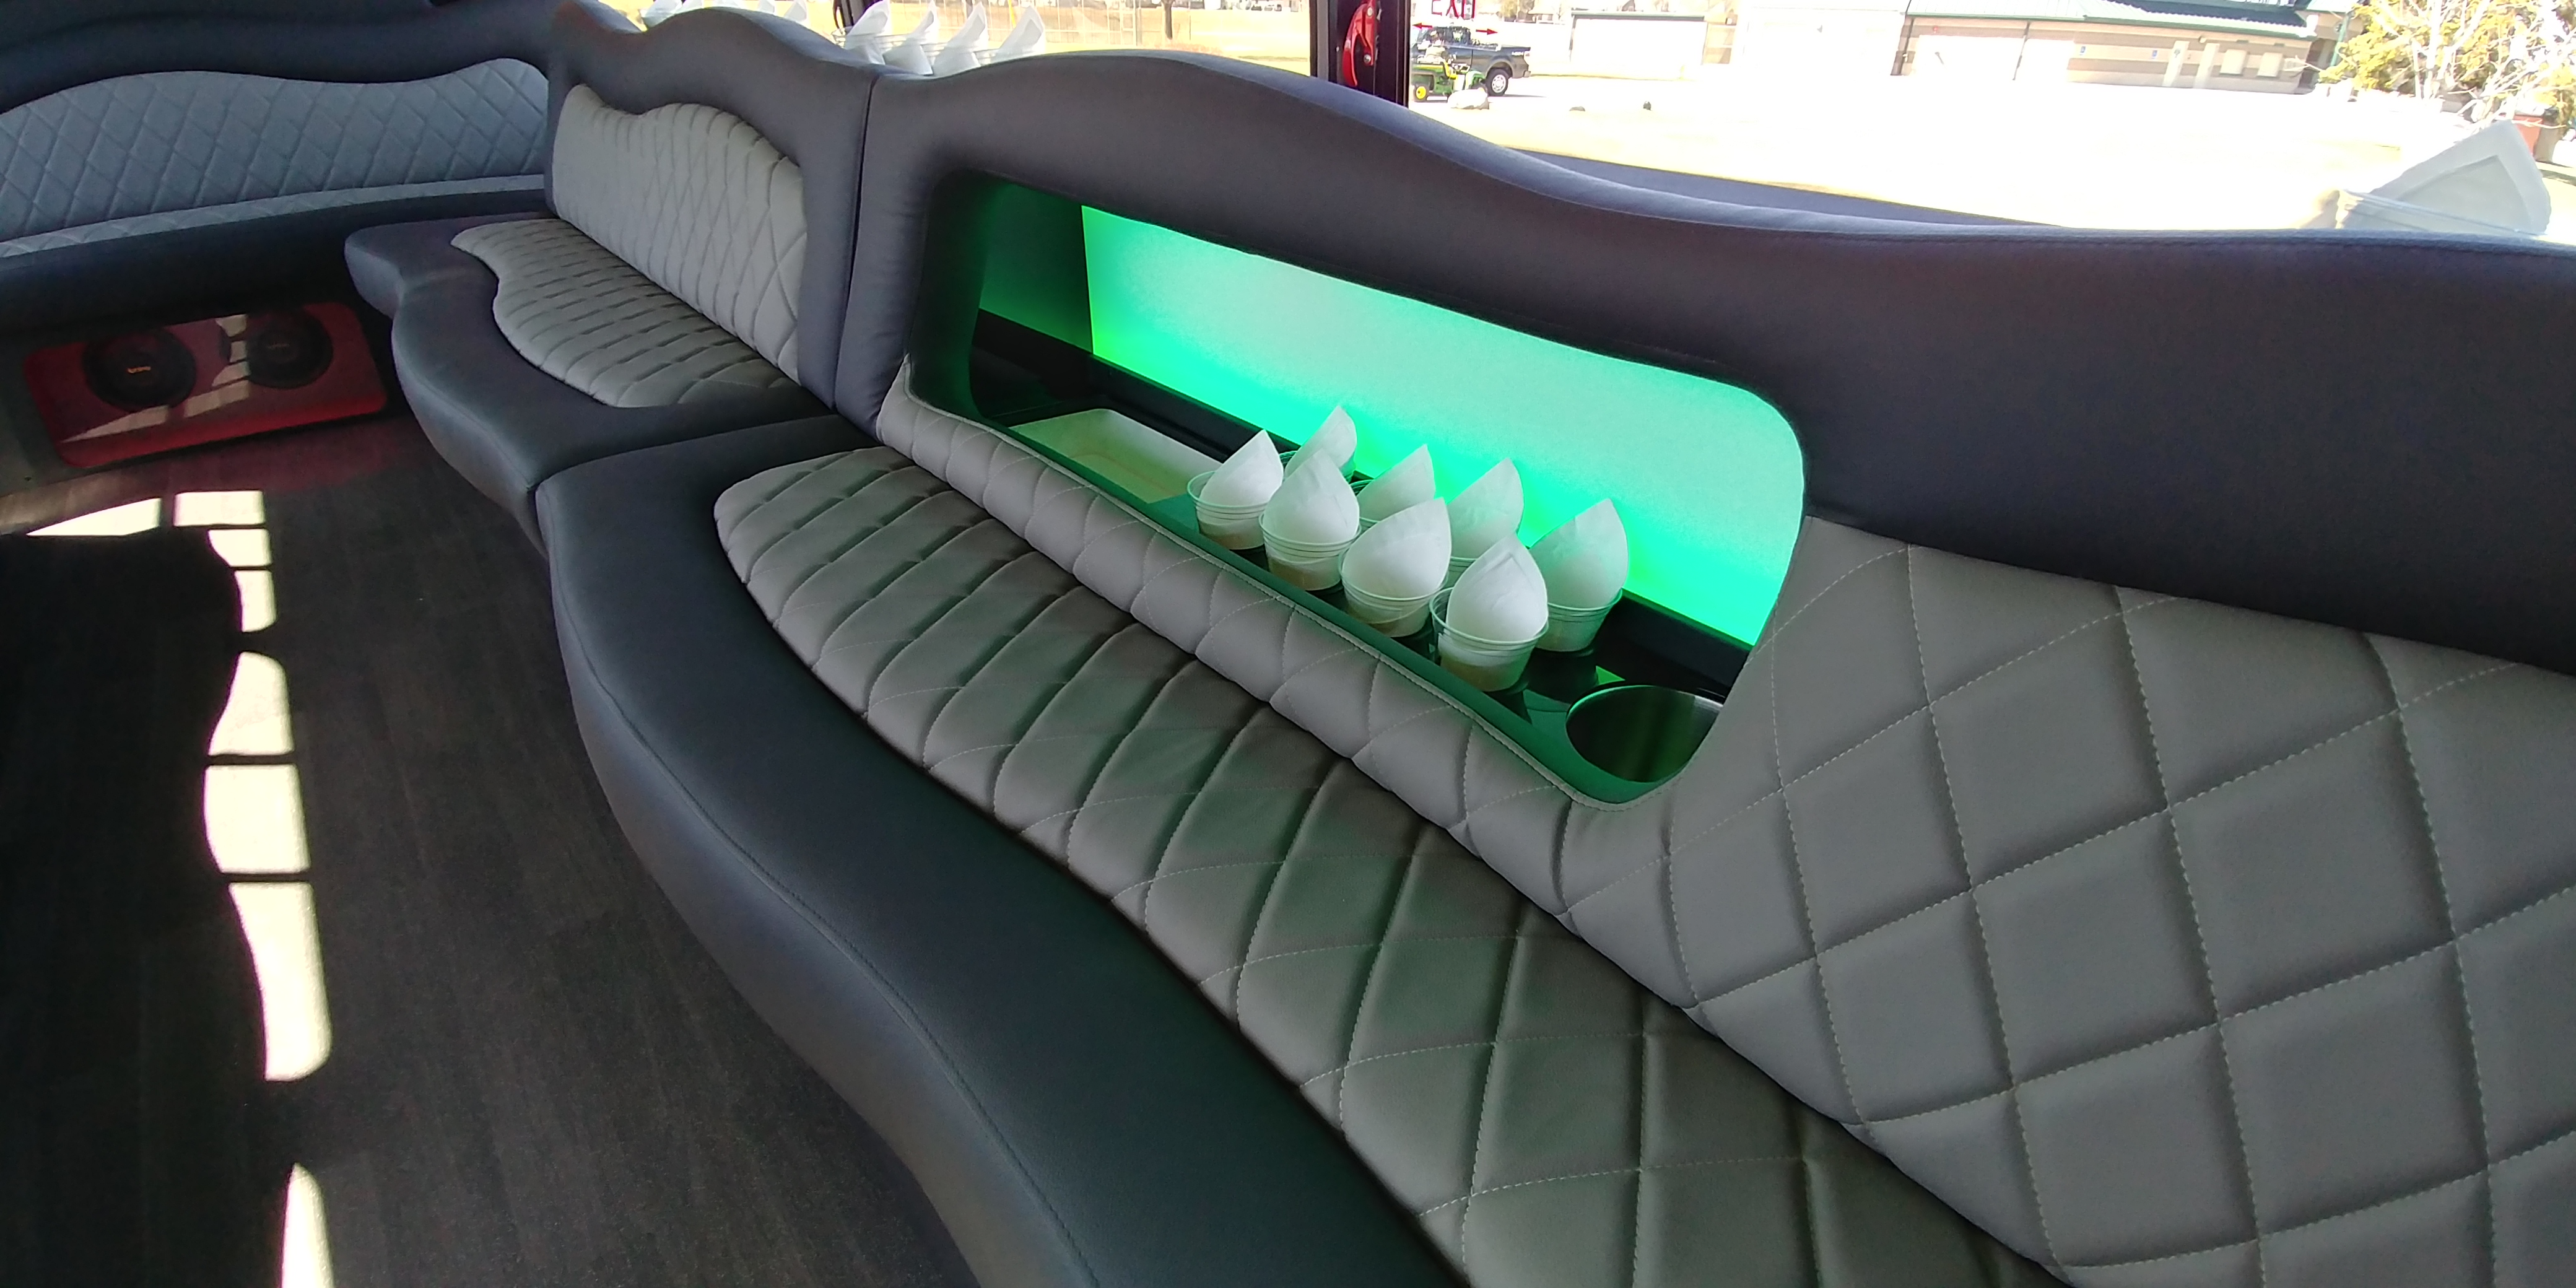 18 Passenger Luxury Limo Bus Seat and Inset